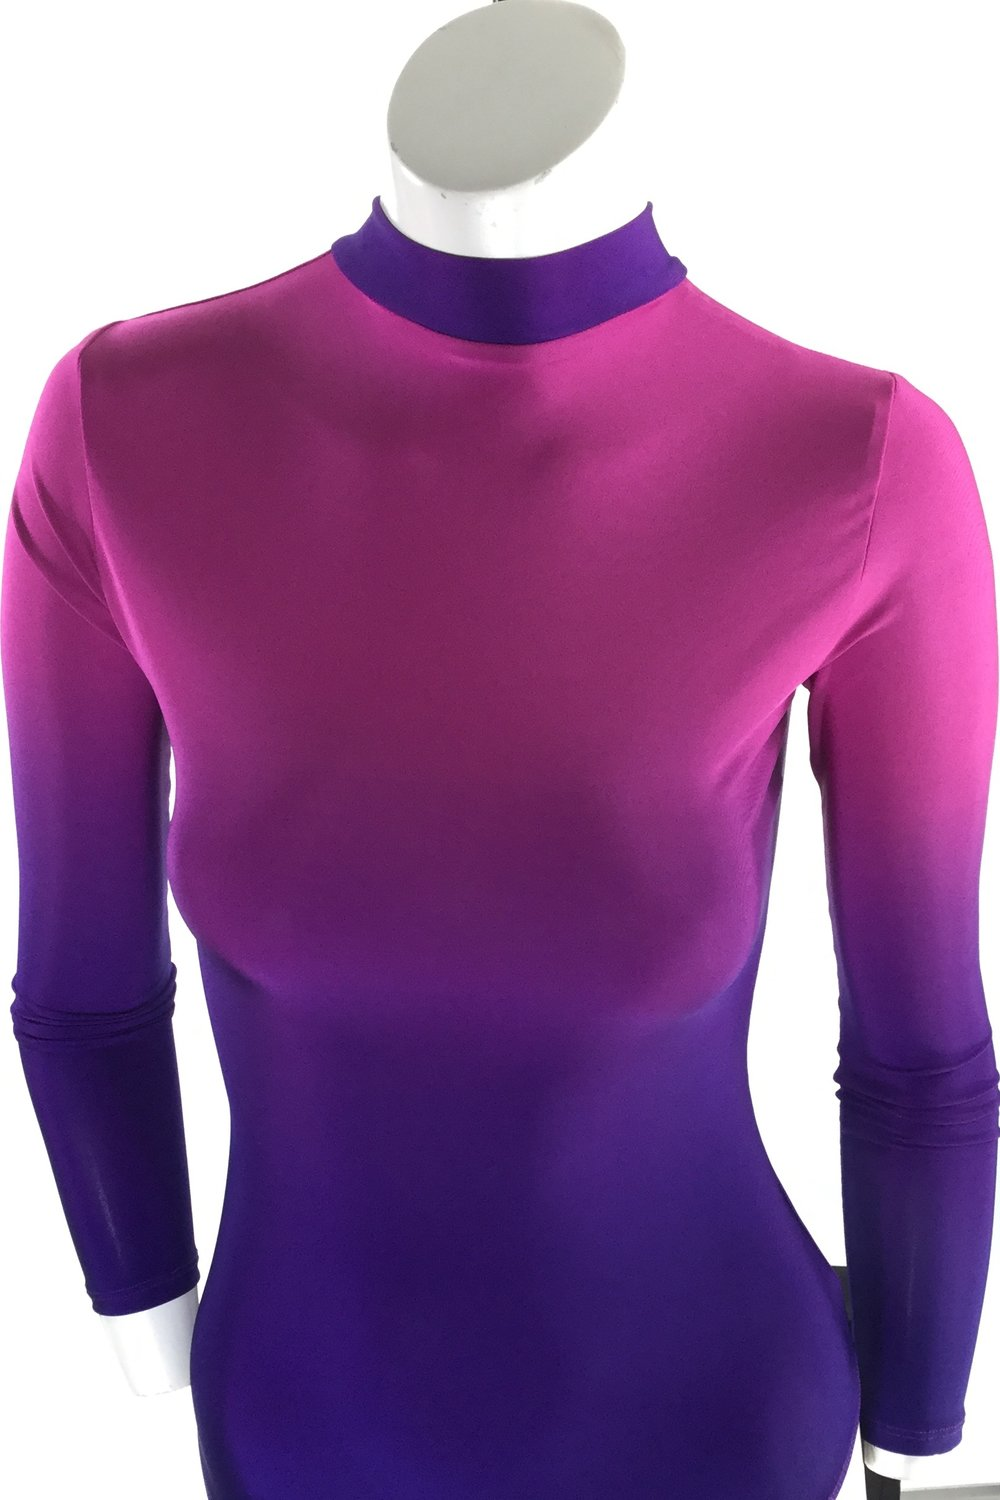 sparkle-ridge-preformance-sportswear-dancewear-purple-colorfade-leo4.jpg